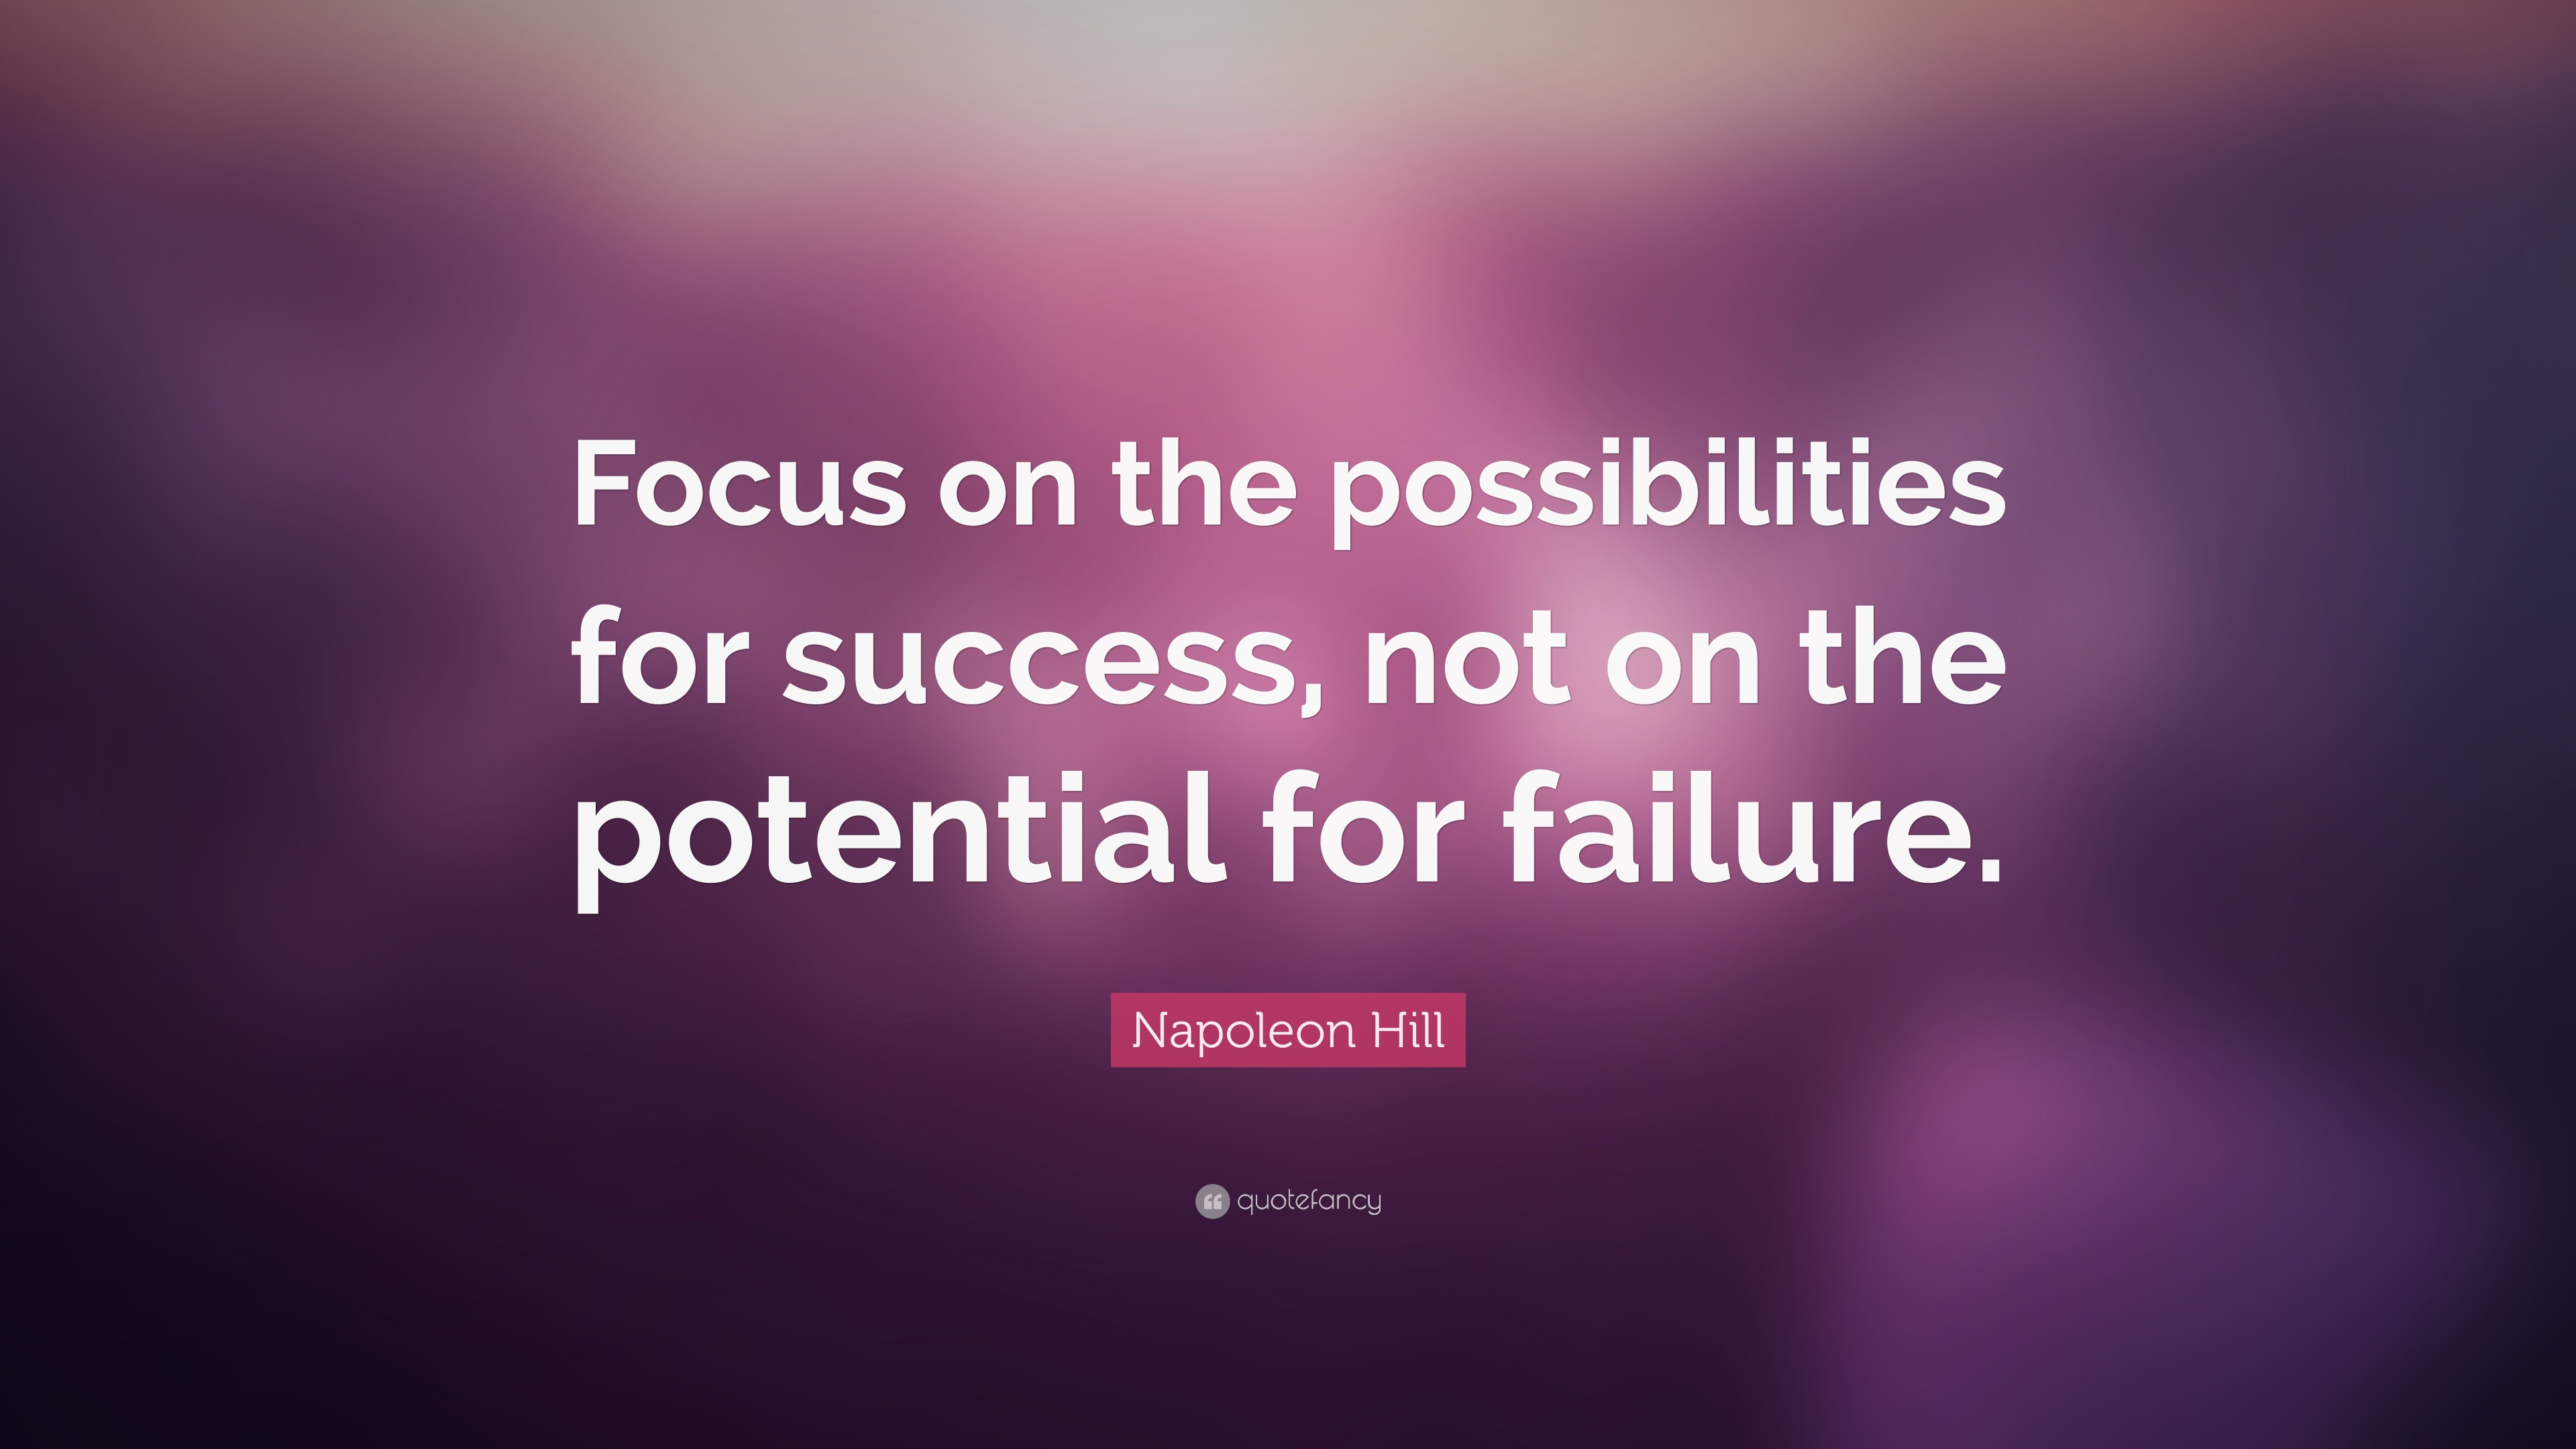 Napoleon Hill Quote Focus On The Possibilities For Success Not On The Potential For Failure 12 Wallpapers Quotefancy